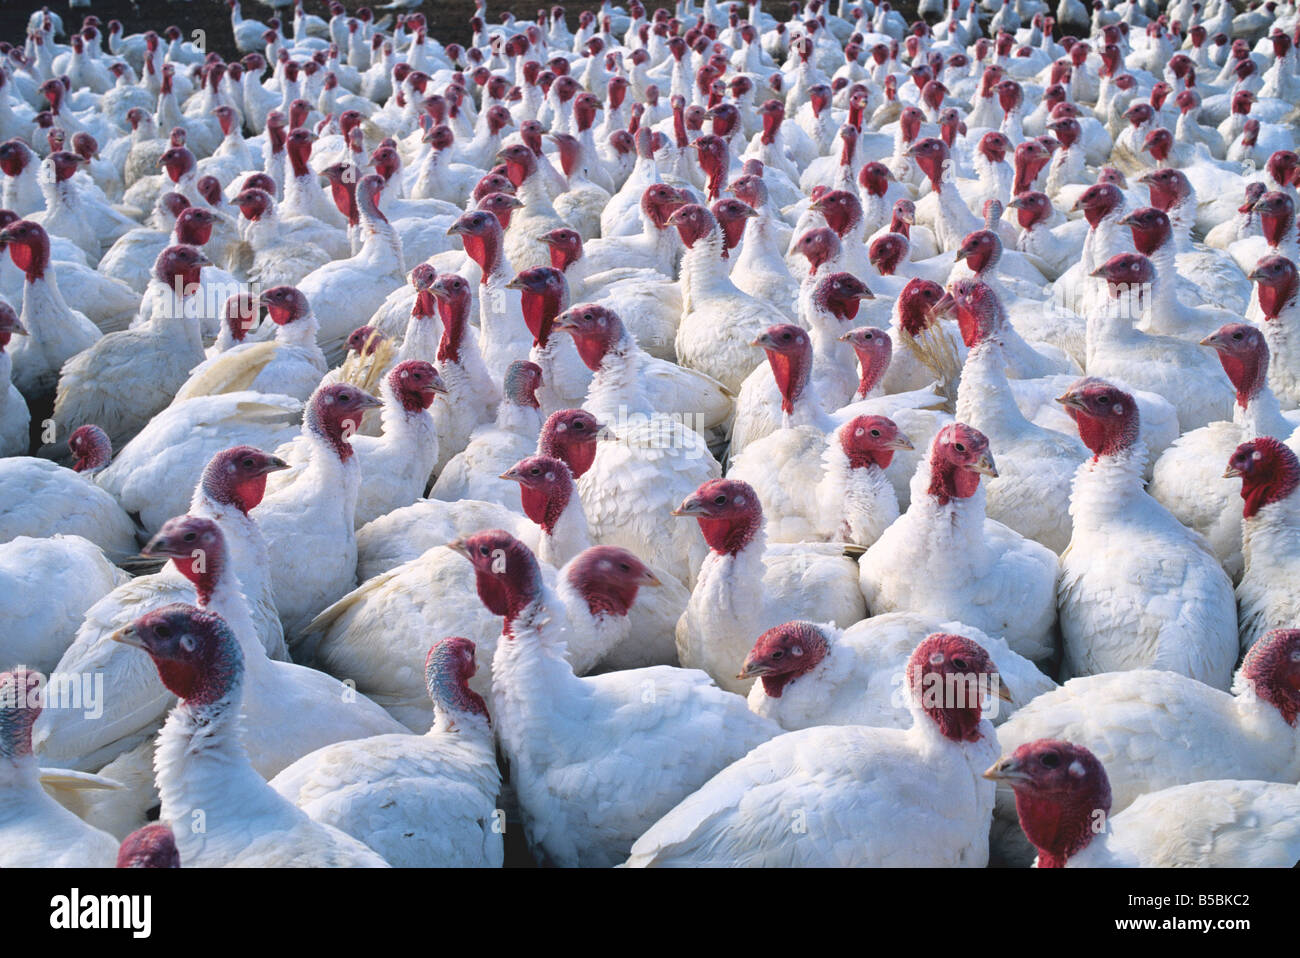 Domesticated Turkey flock. - Stock Image